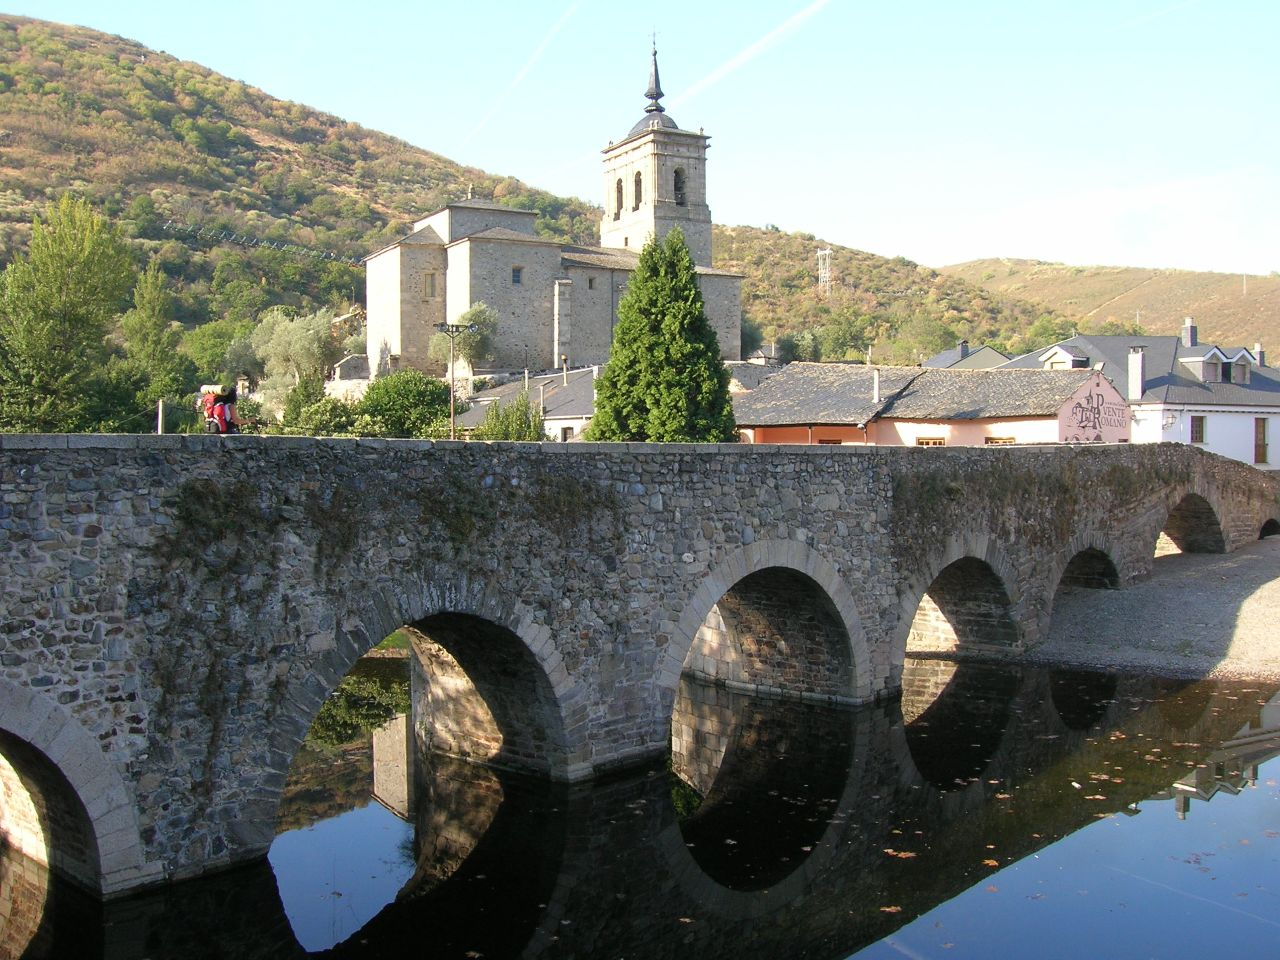 Puente de Molinaseca before arrive in Ponferrada